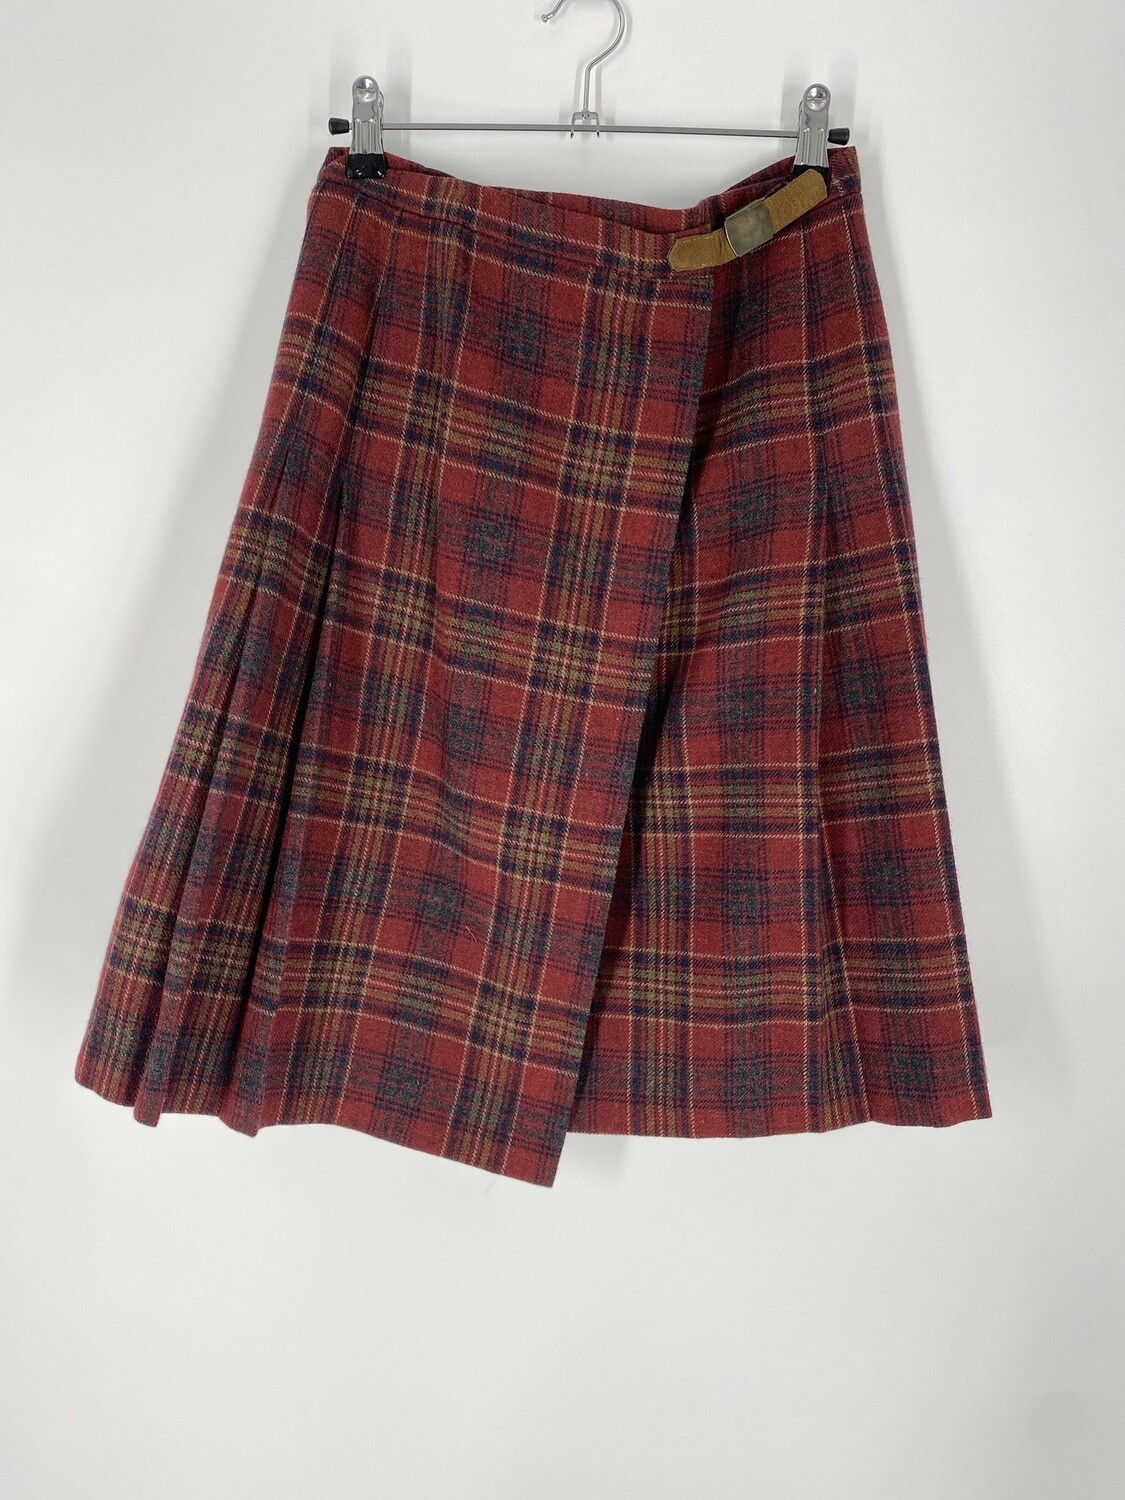 Pendleton Red Plaid Skirt Size S